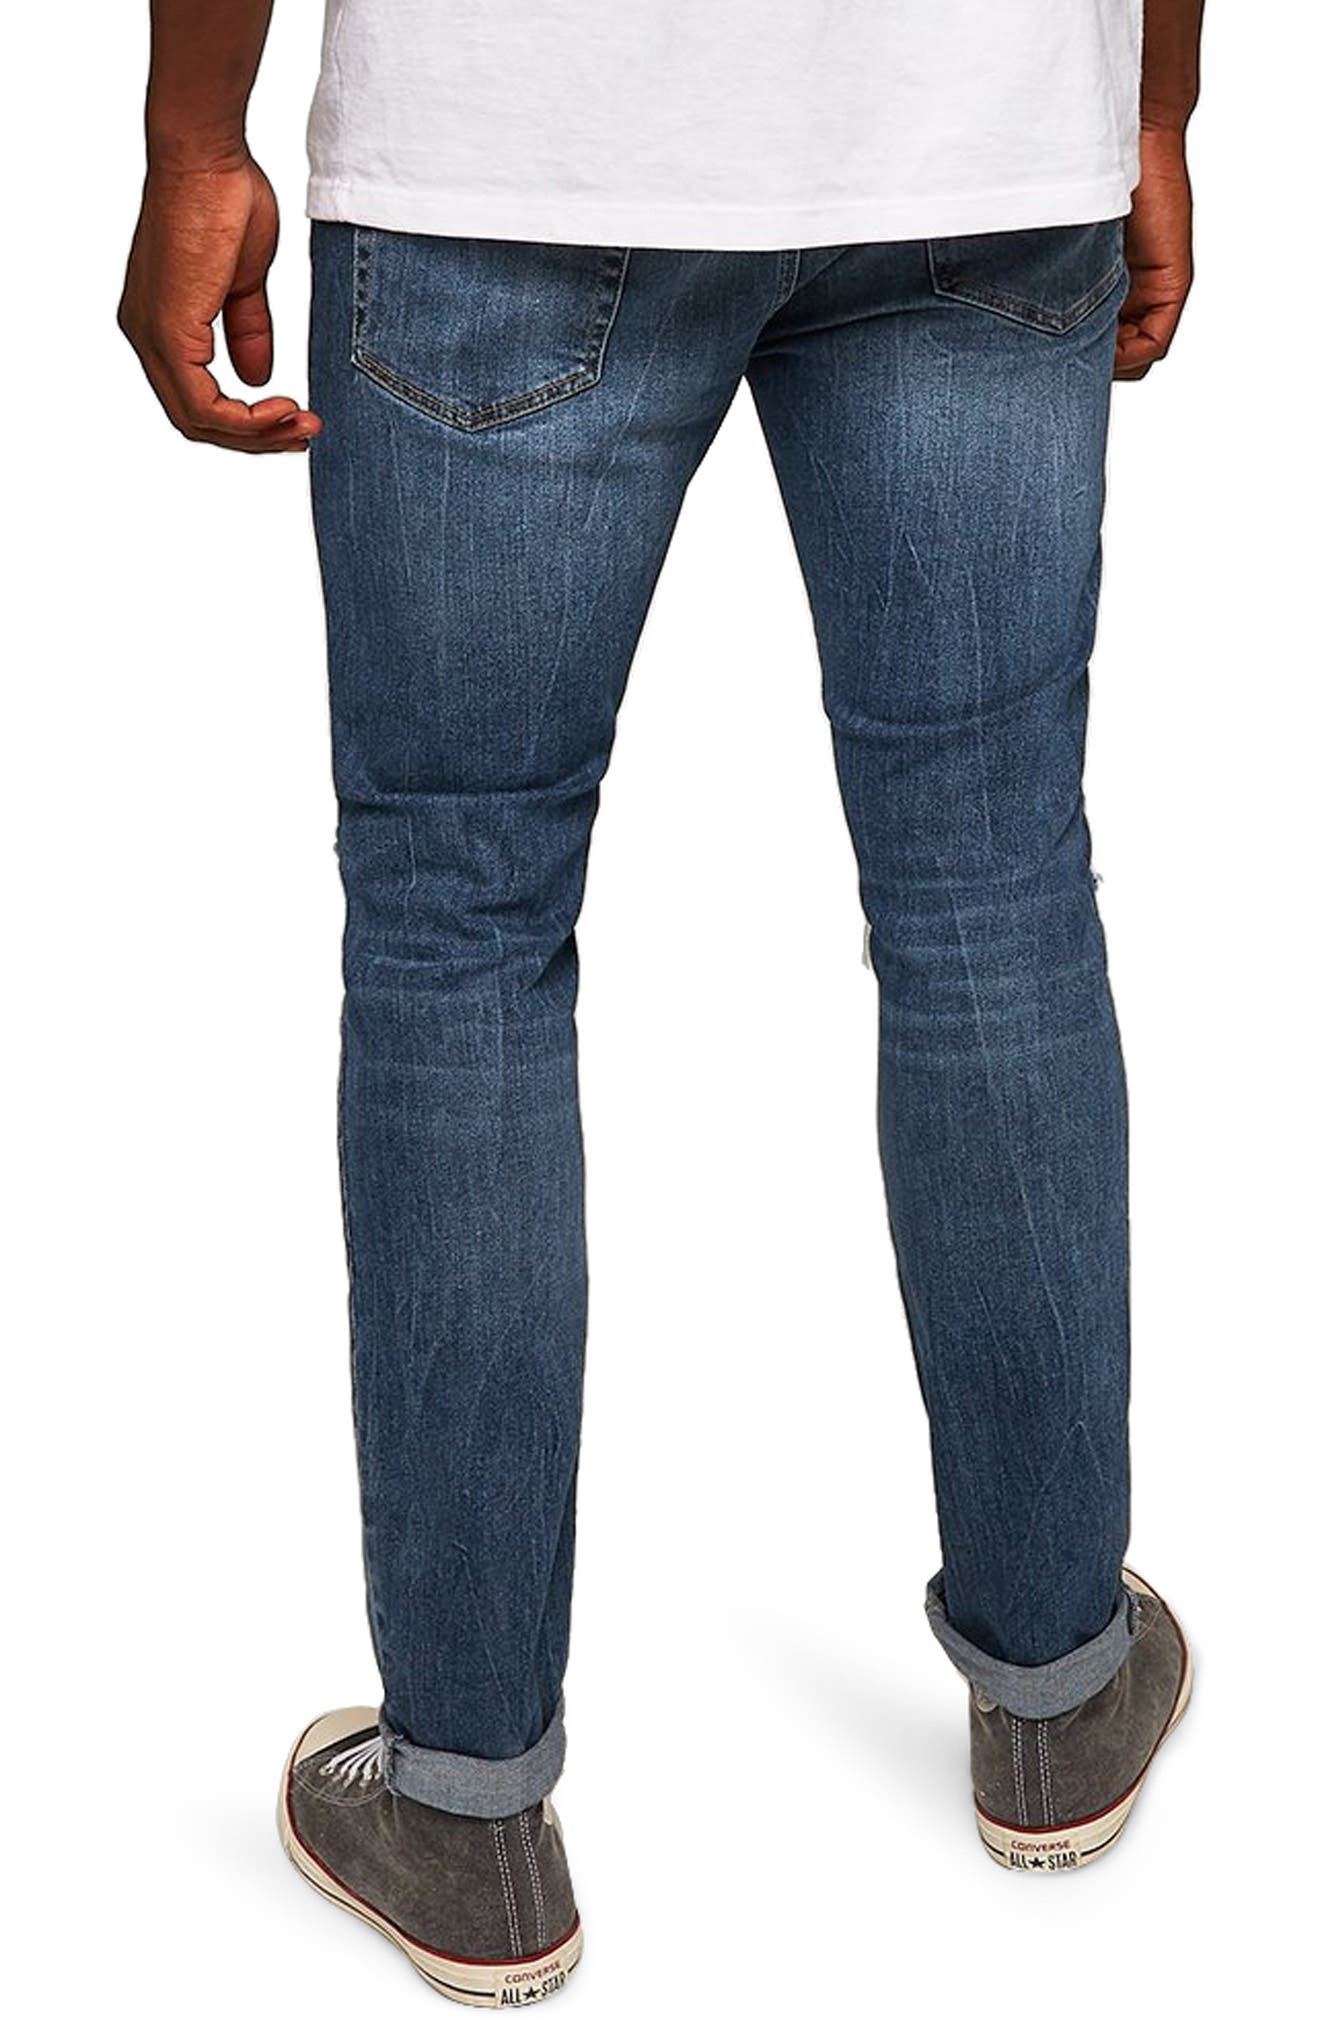 TOPMAN, Polly Ripped Stretch Skinny Jeans, Alternate thumbnail 2, color, BLUE